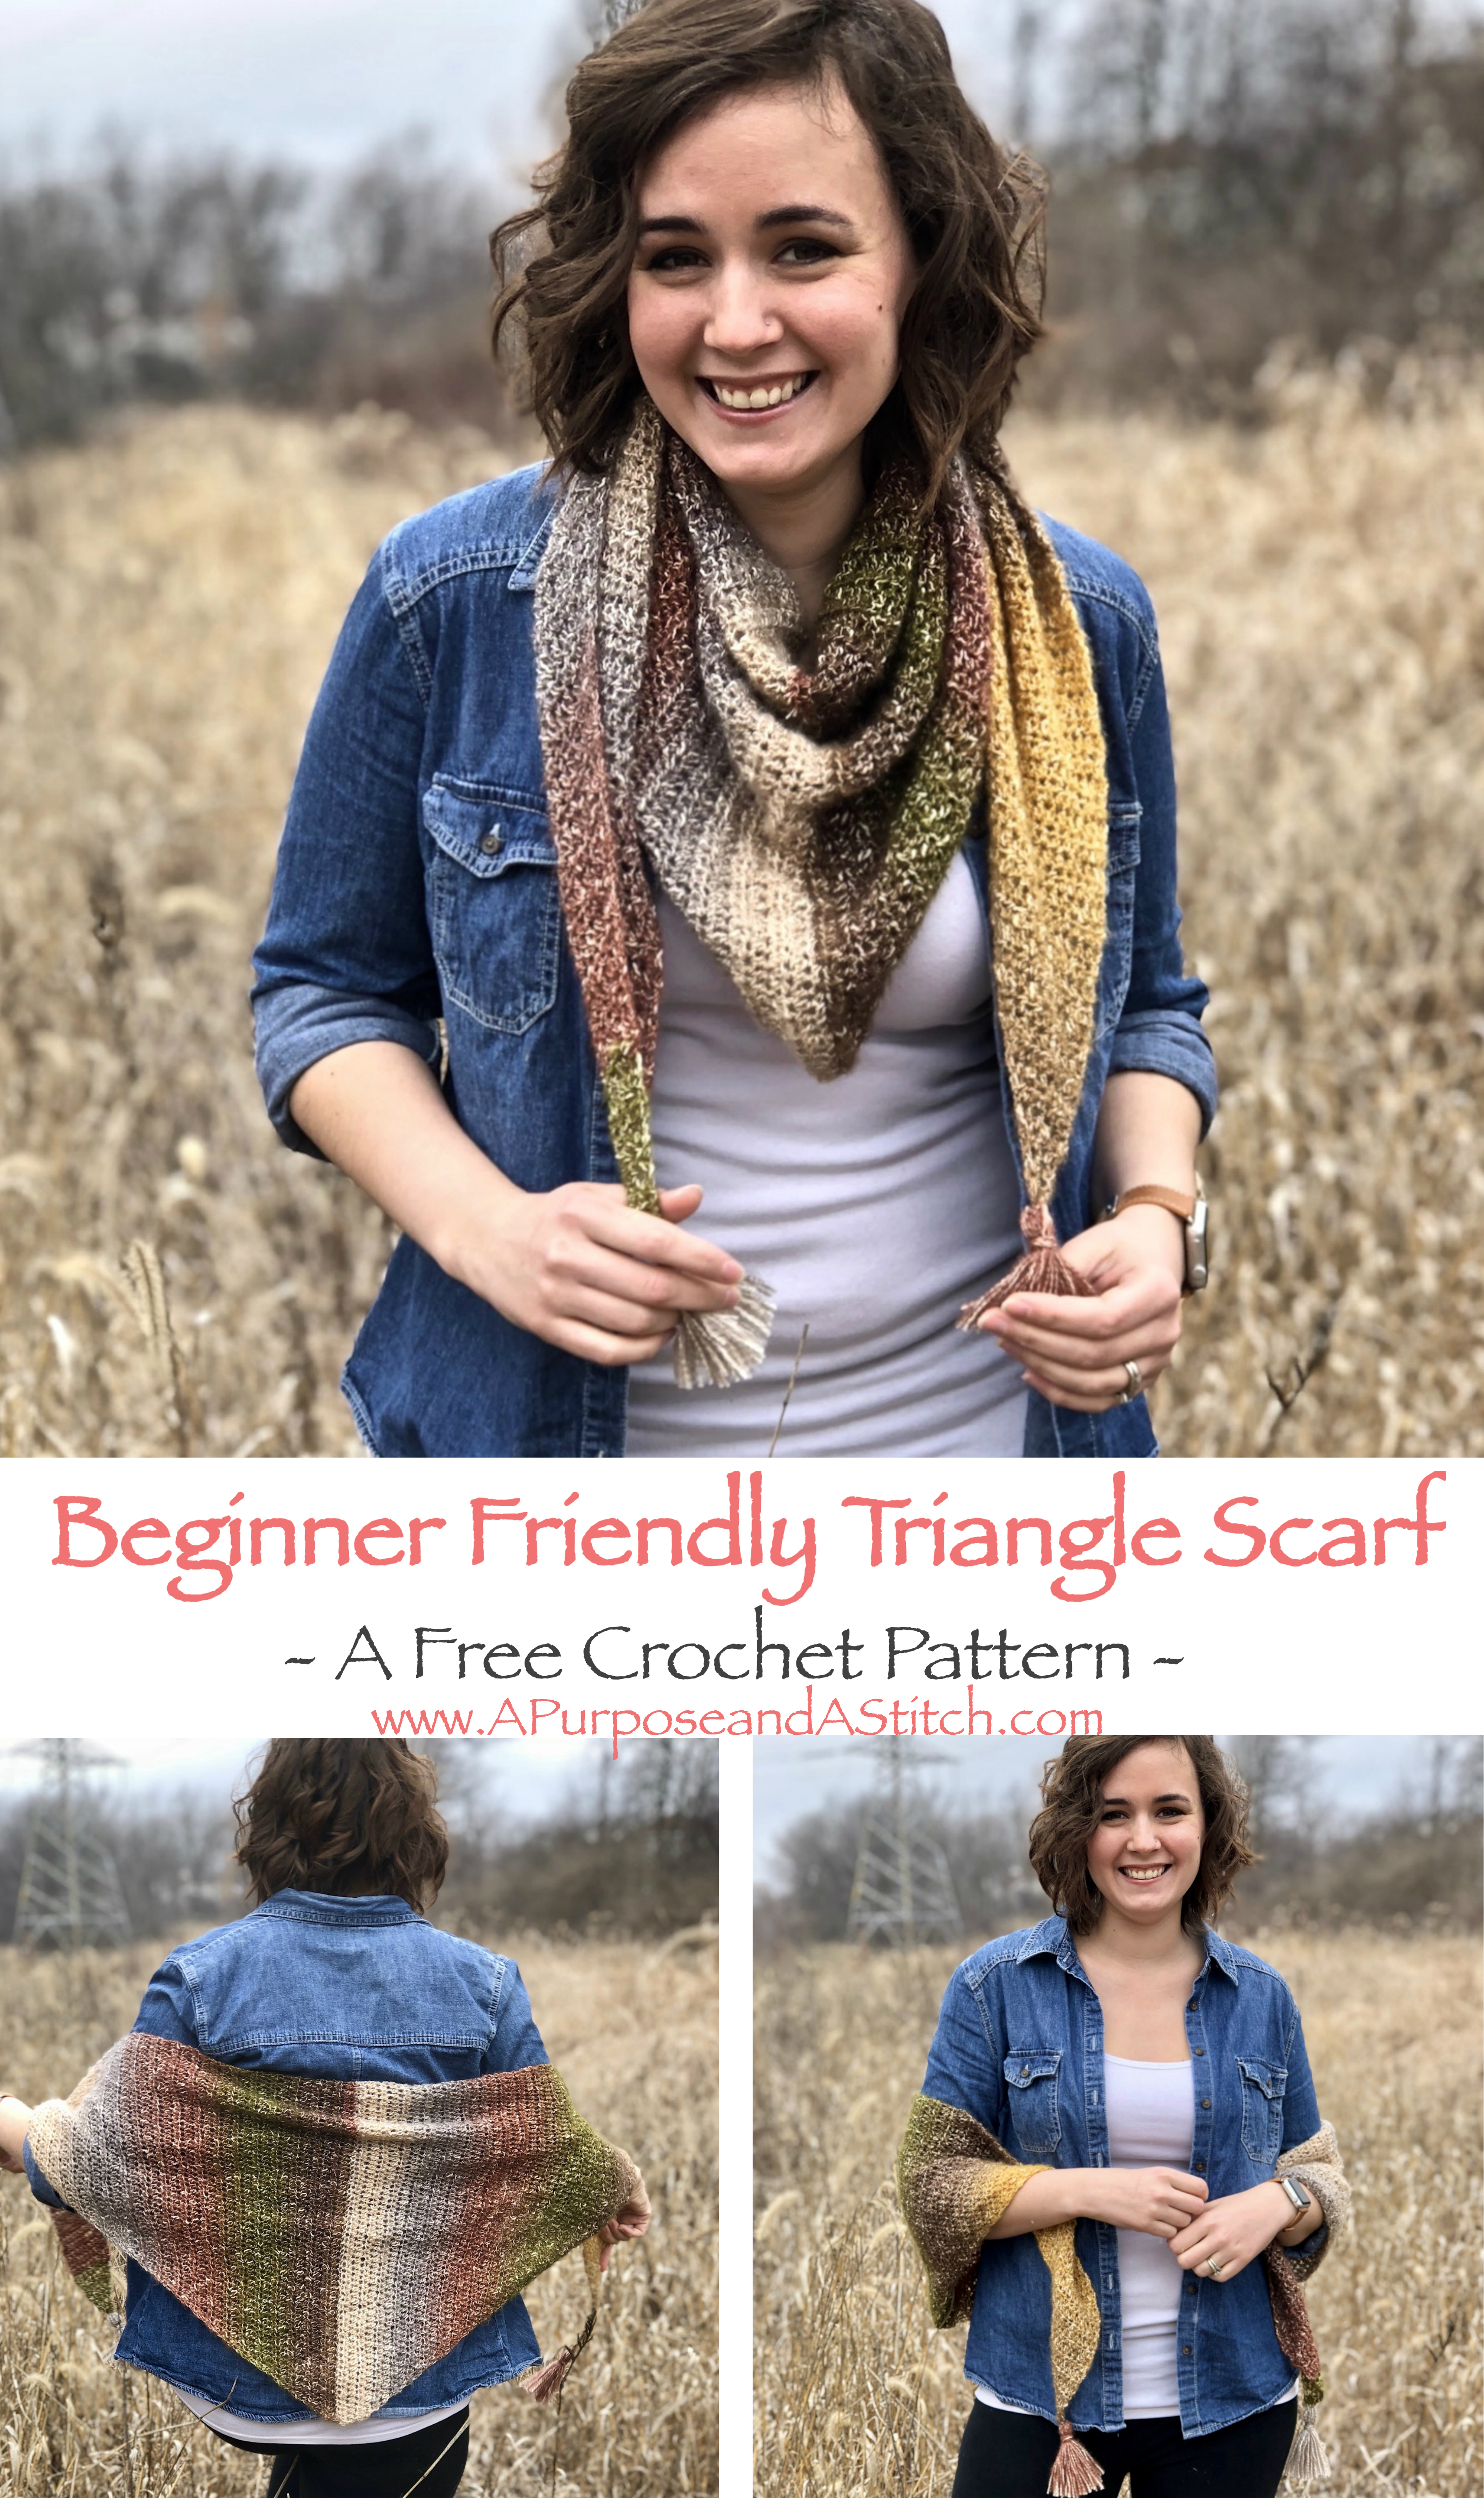 Beginner Friendly Triangle Scarf